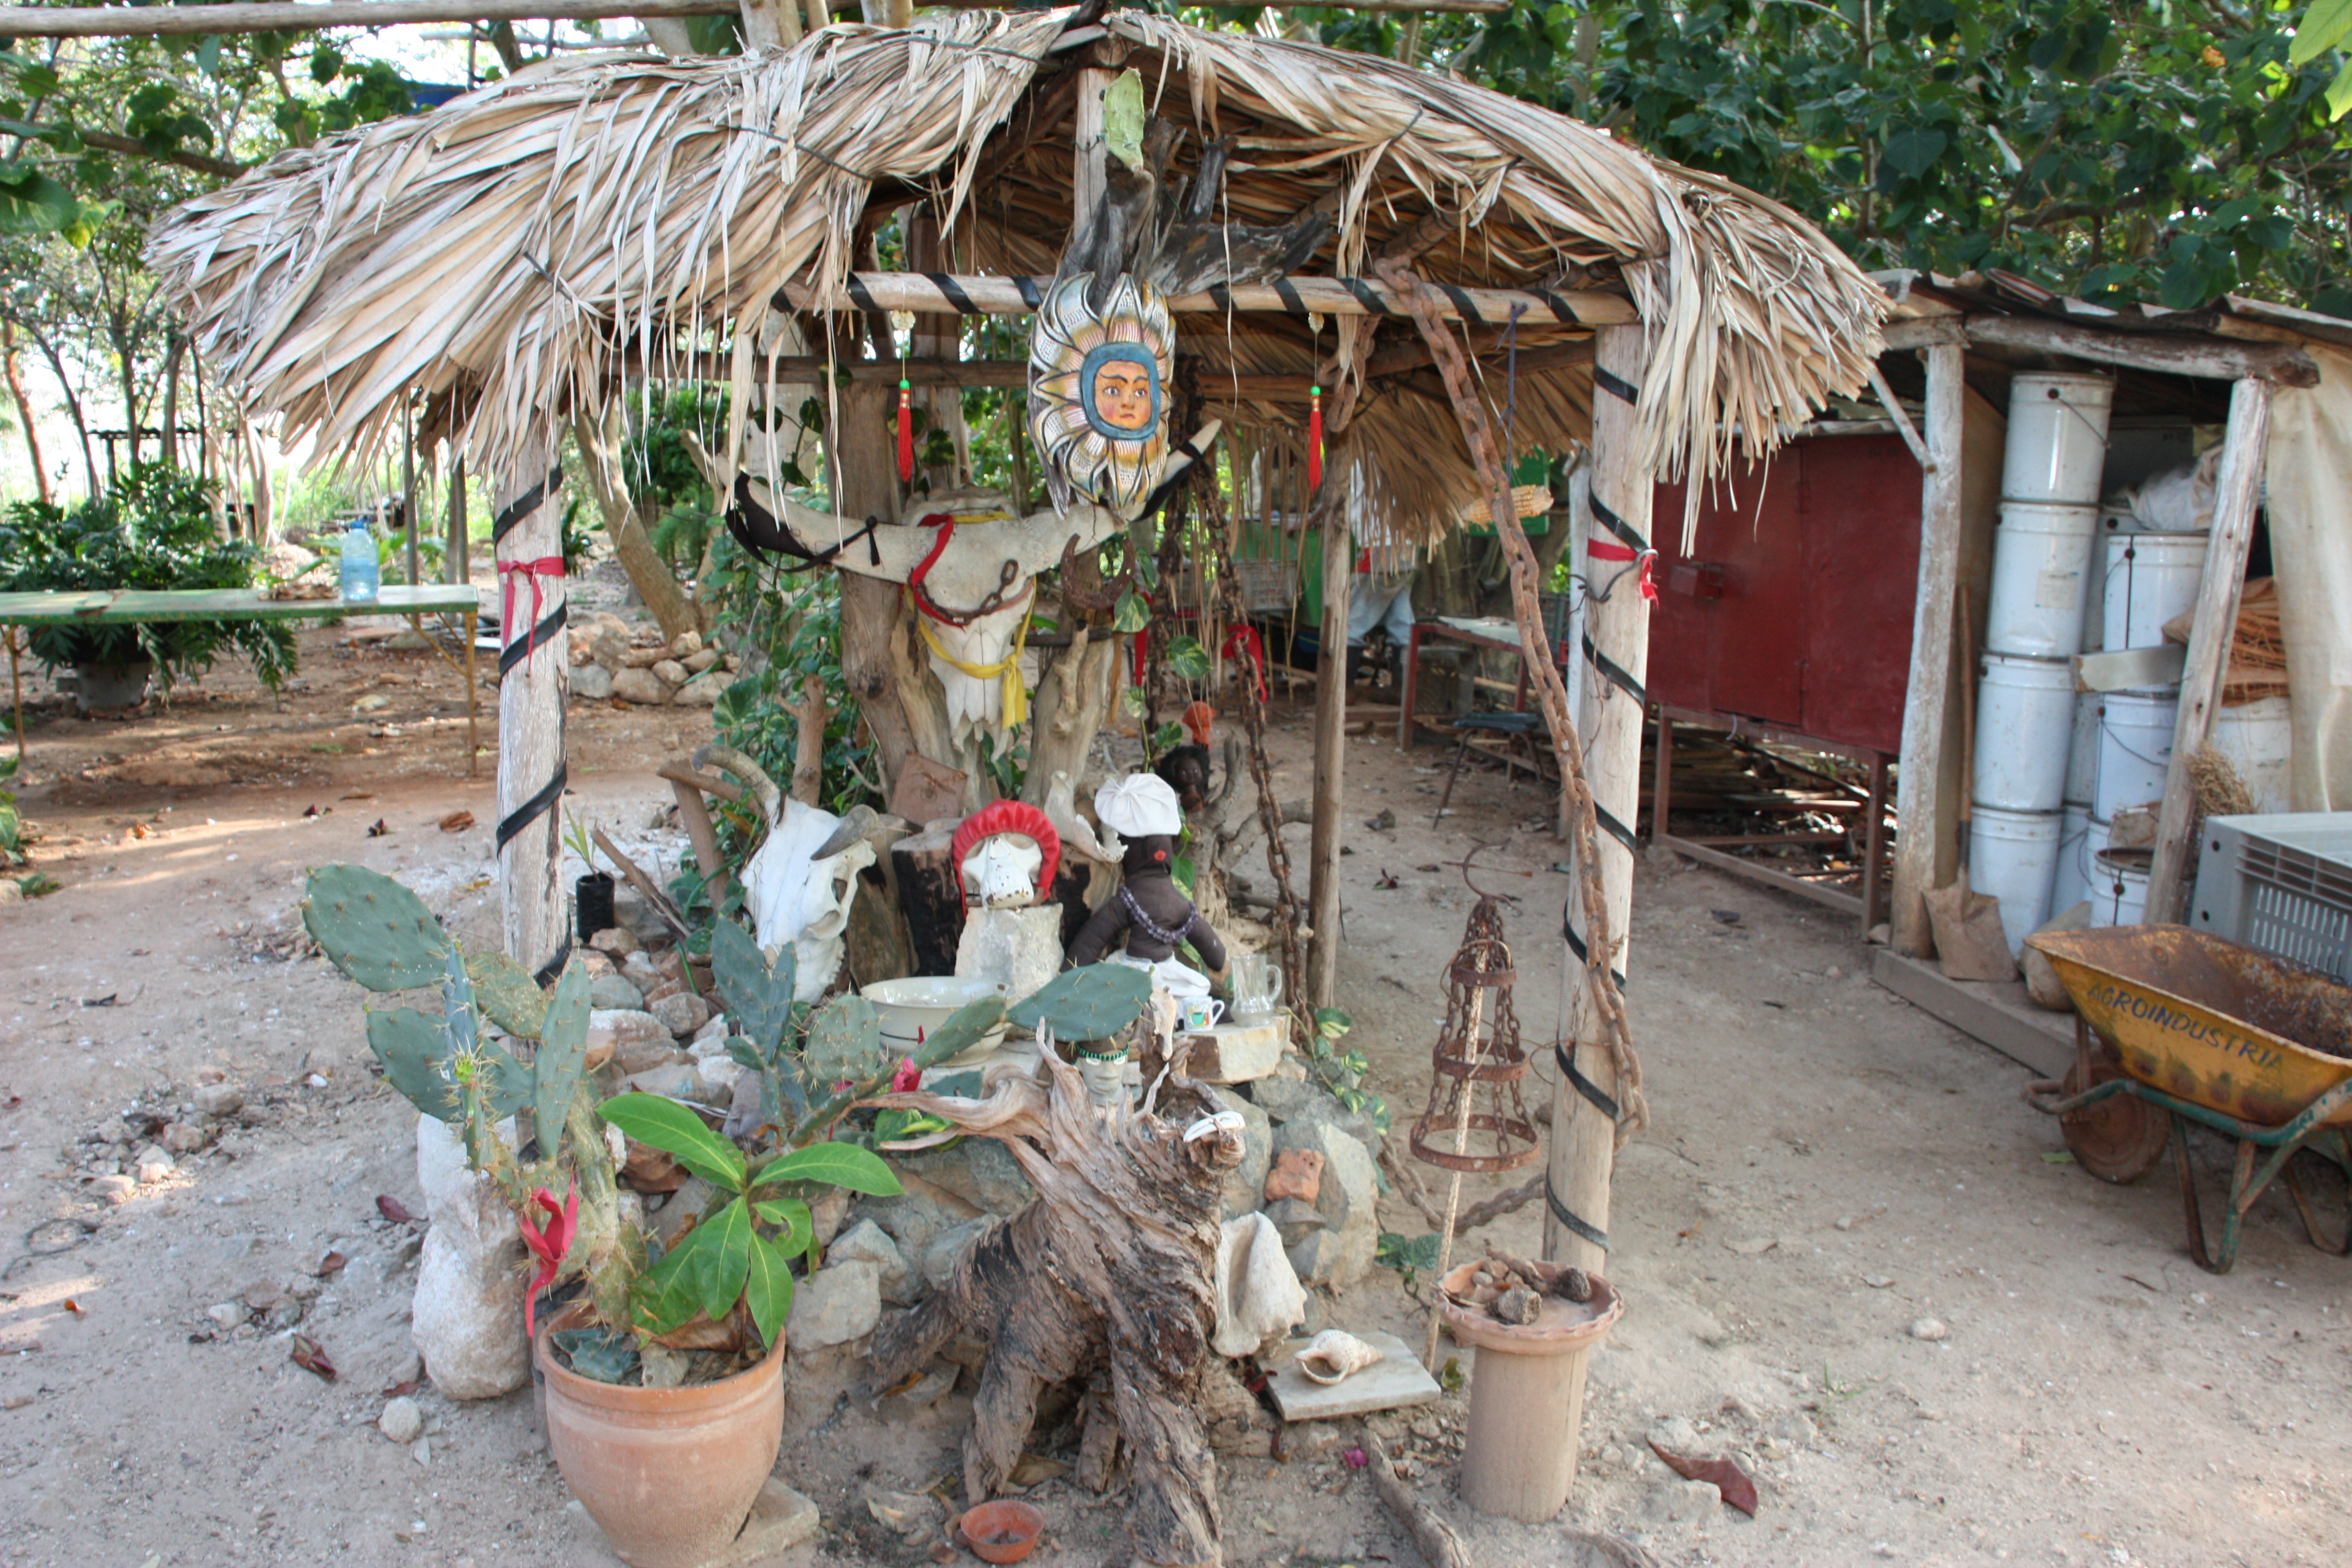 A Santería altar in Cuba. Photo by Susanne Bollinger / CC BY-SA (https://creativecommons.org/licenses/by-sa/4.0)